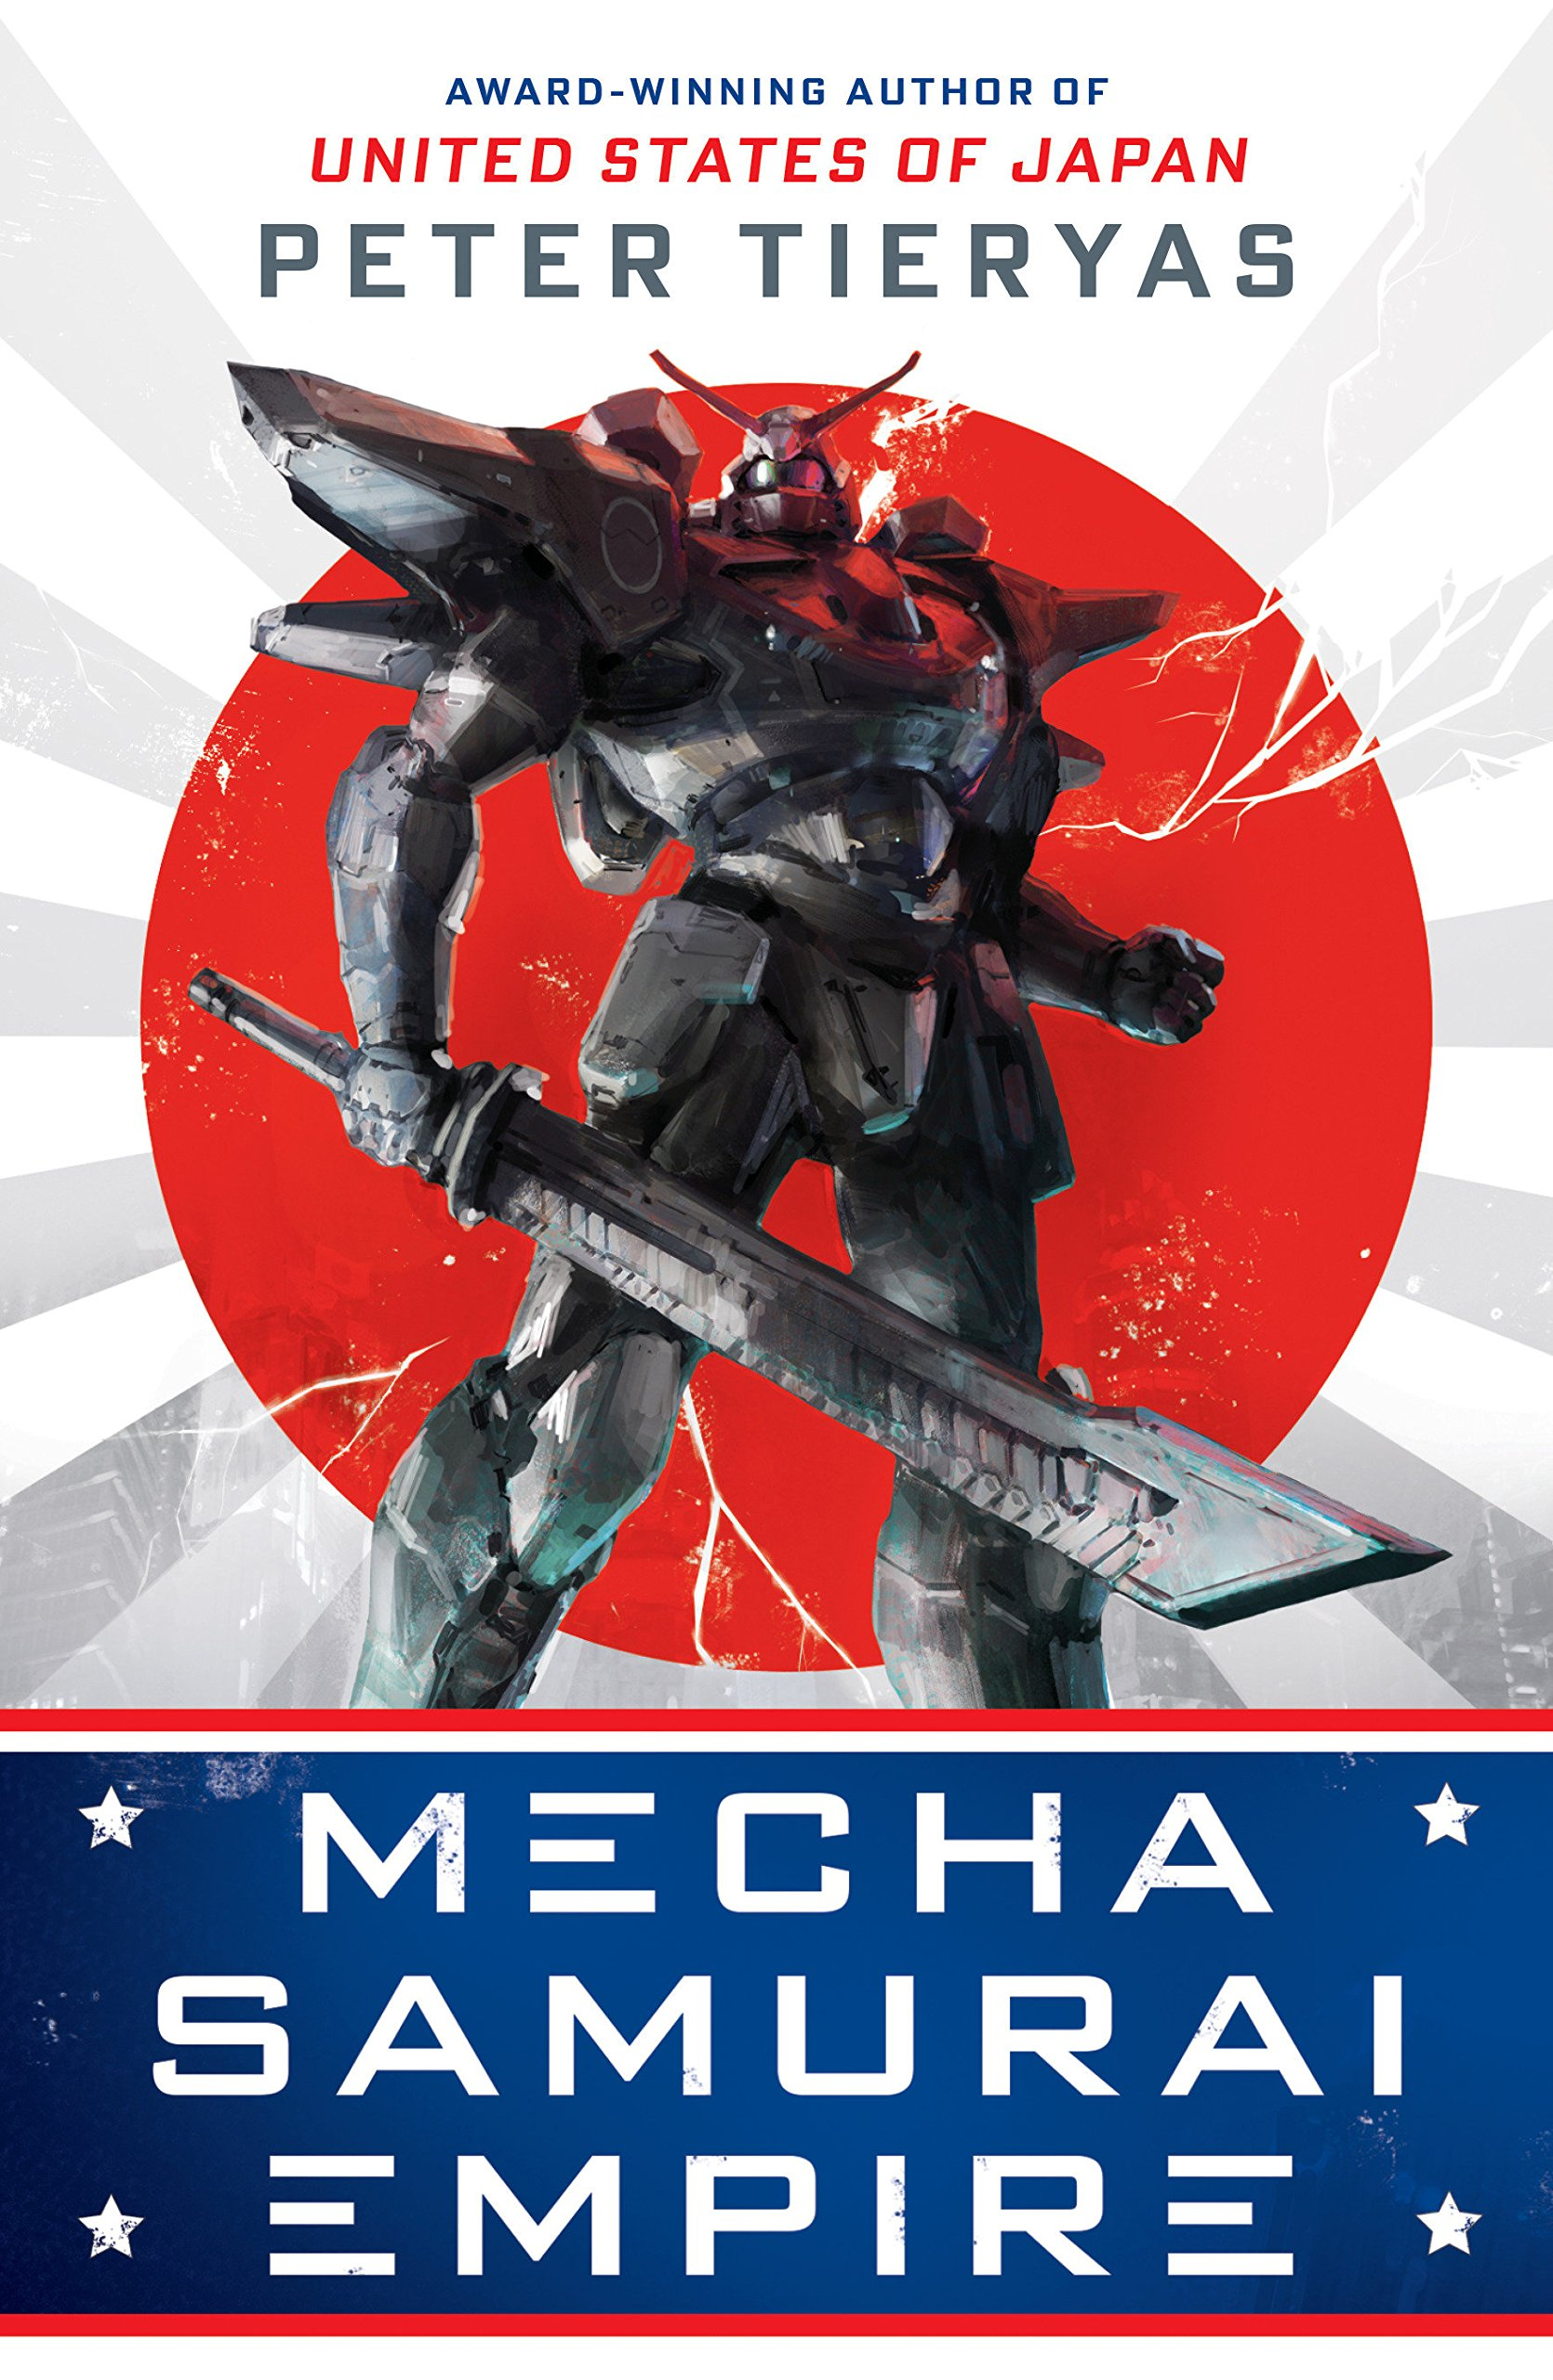 Mecha Samurai Empire, a novel by Peter Tieryas